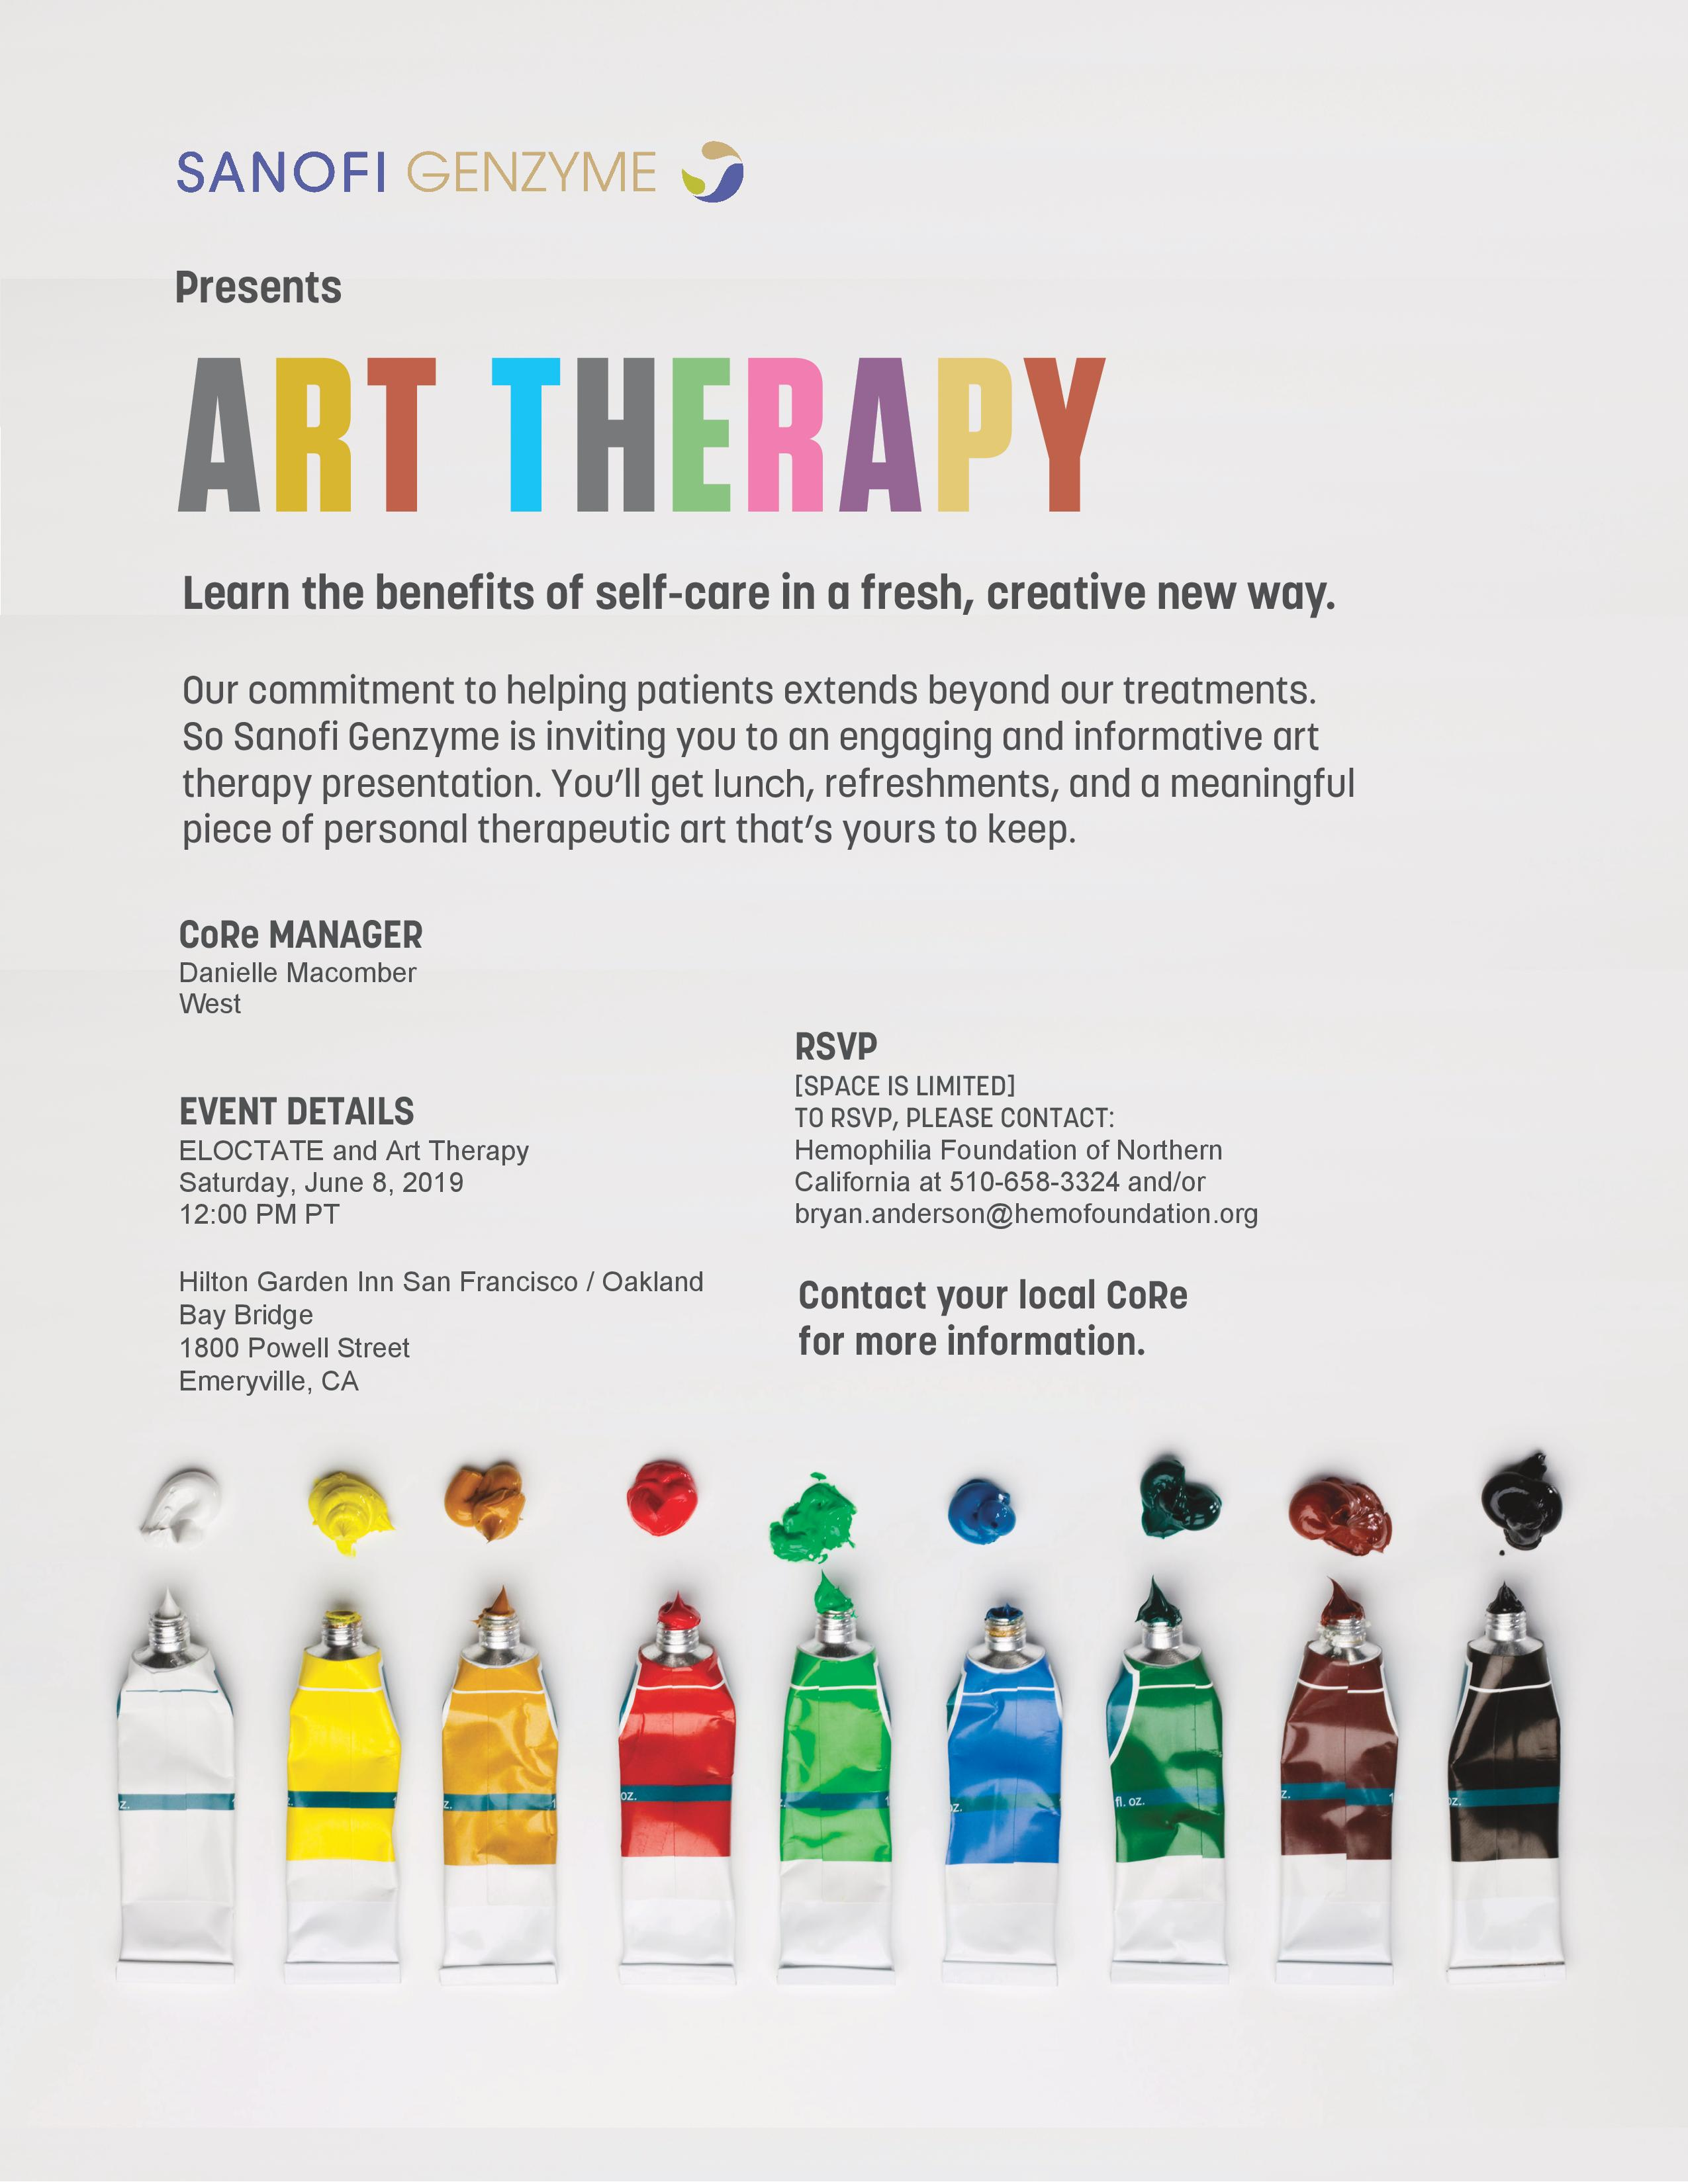 Eloctate + Art Therapy